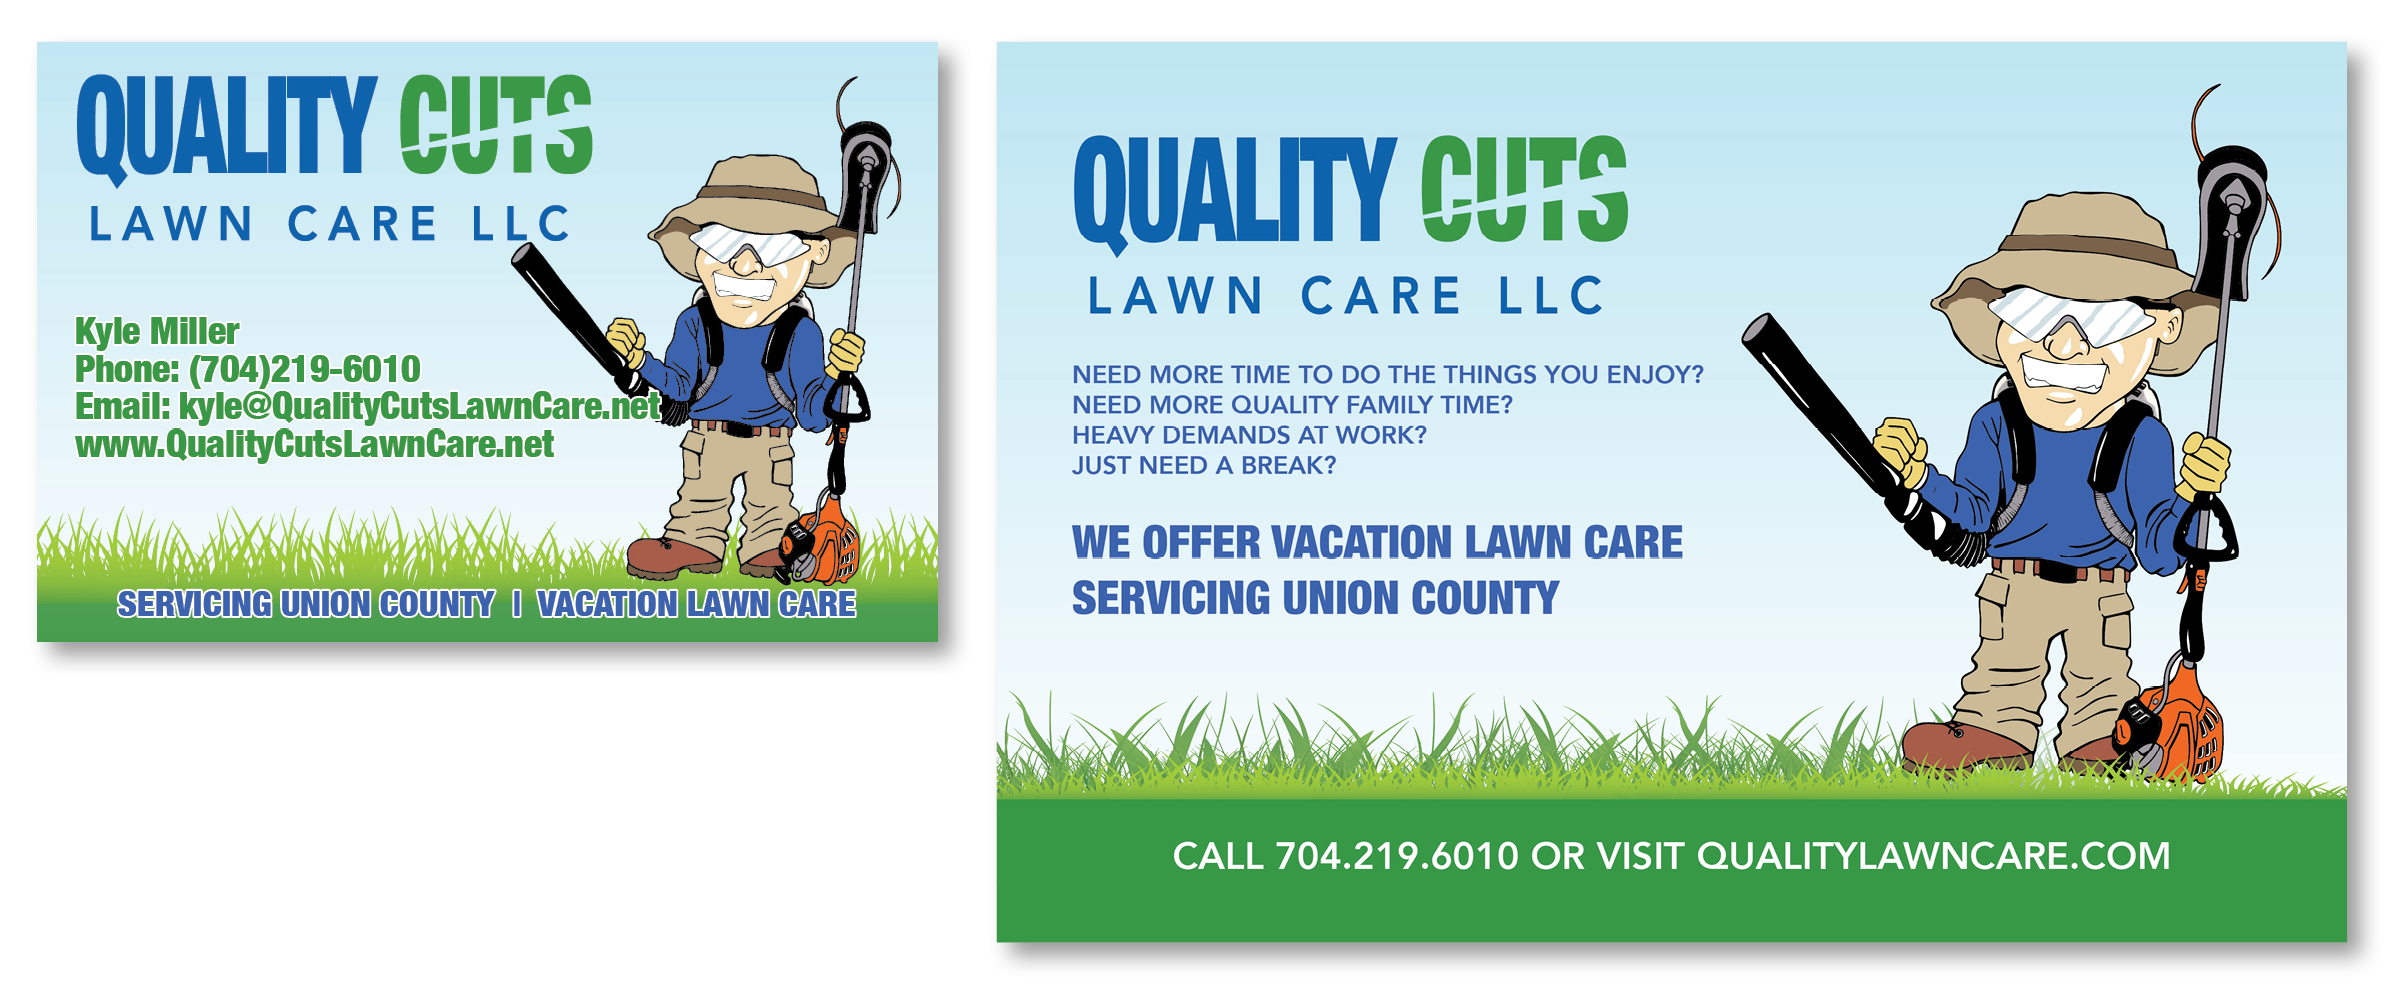 Quality Cuts Lawn Care LLC Business and Postcard